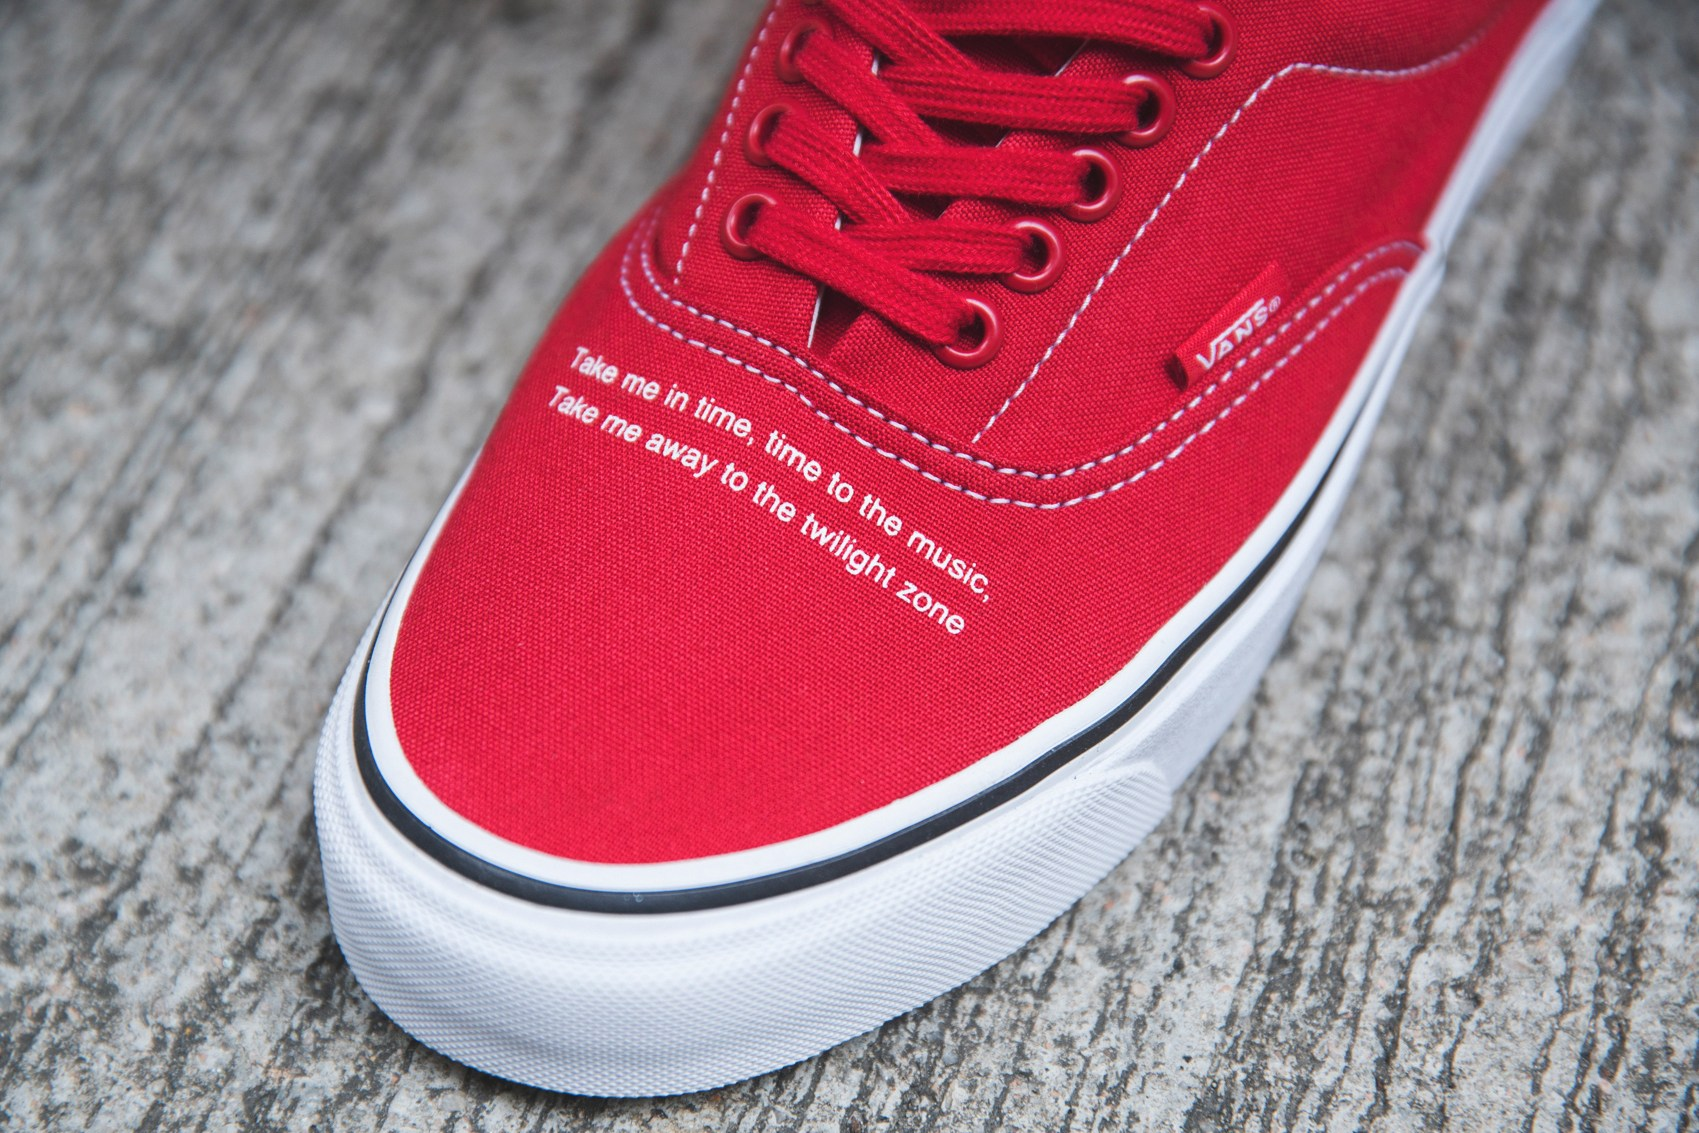 undercover-vans-2017-collaboration-368-014